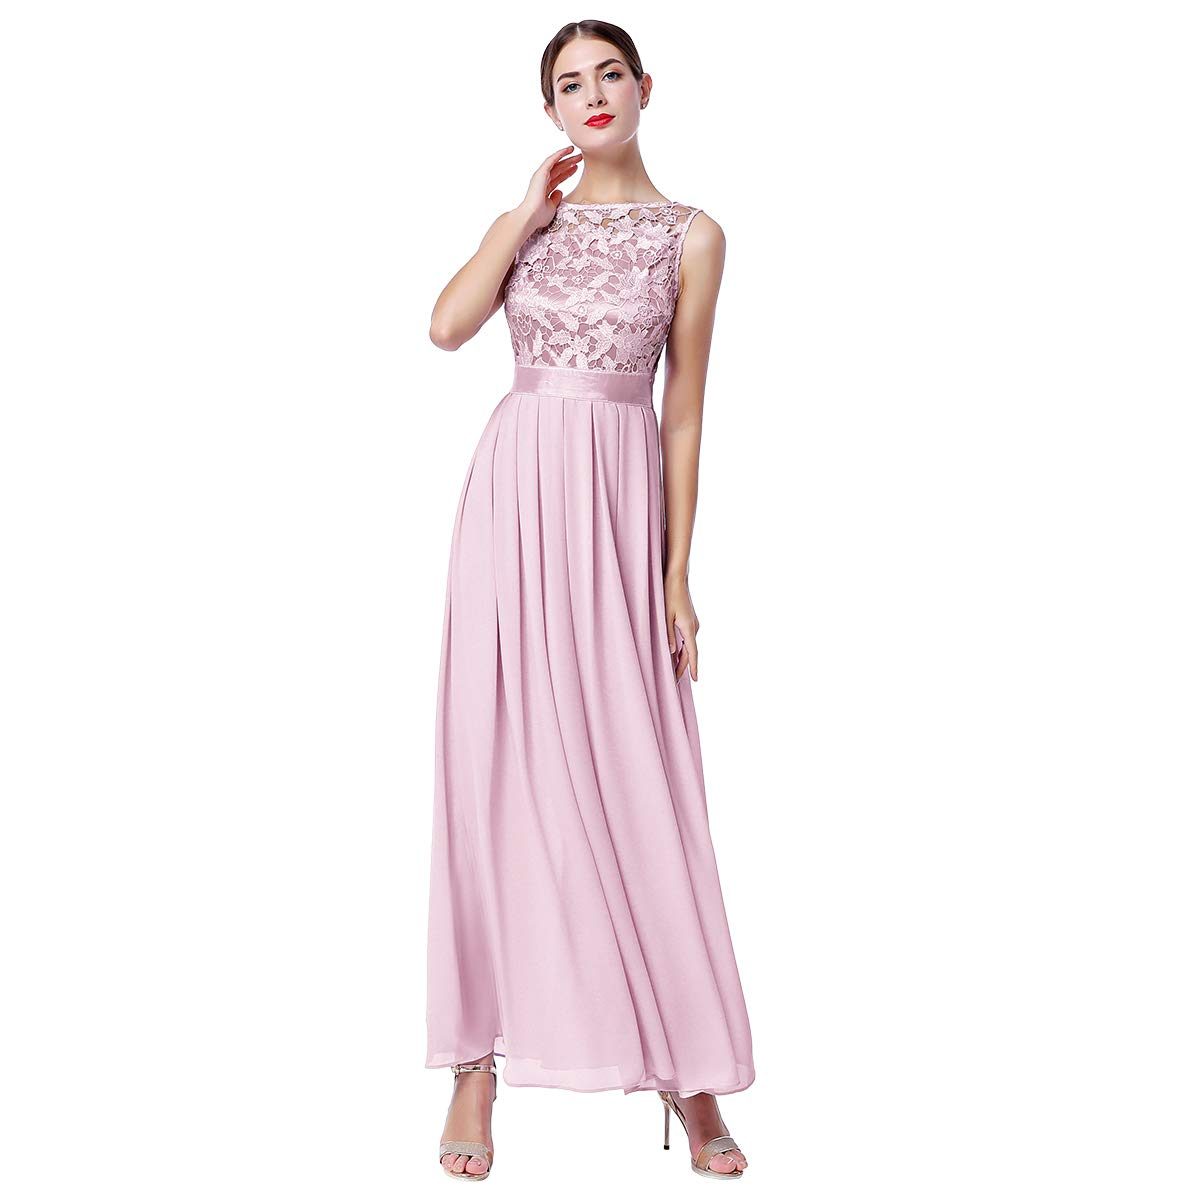 Women Lace Chiffon Bridesmaid Long Dress Sleeveless Cocktail Party Formal Gown